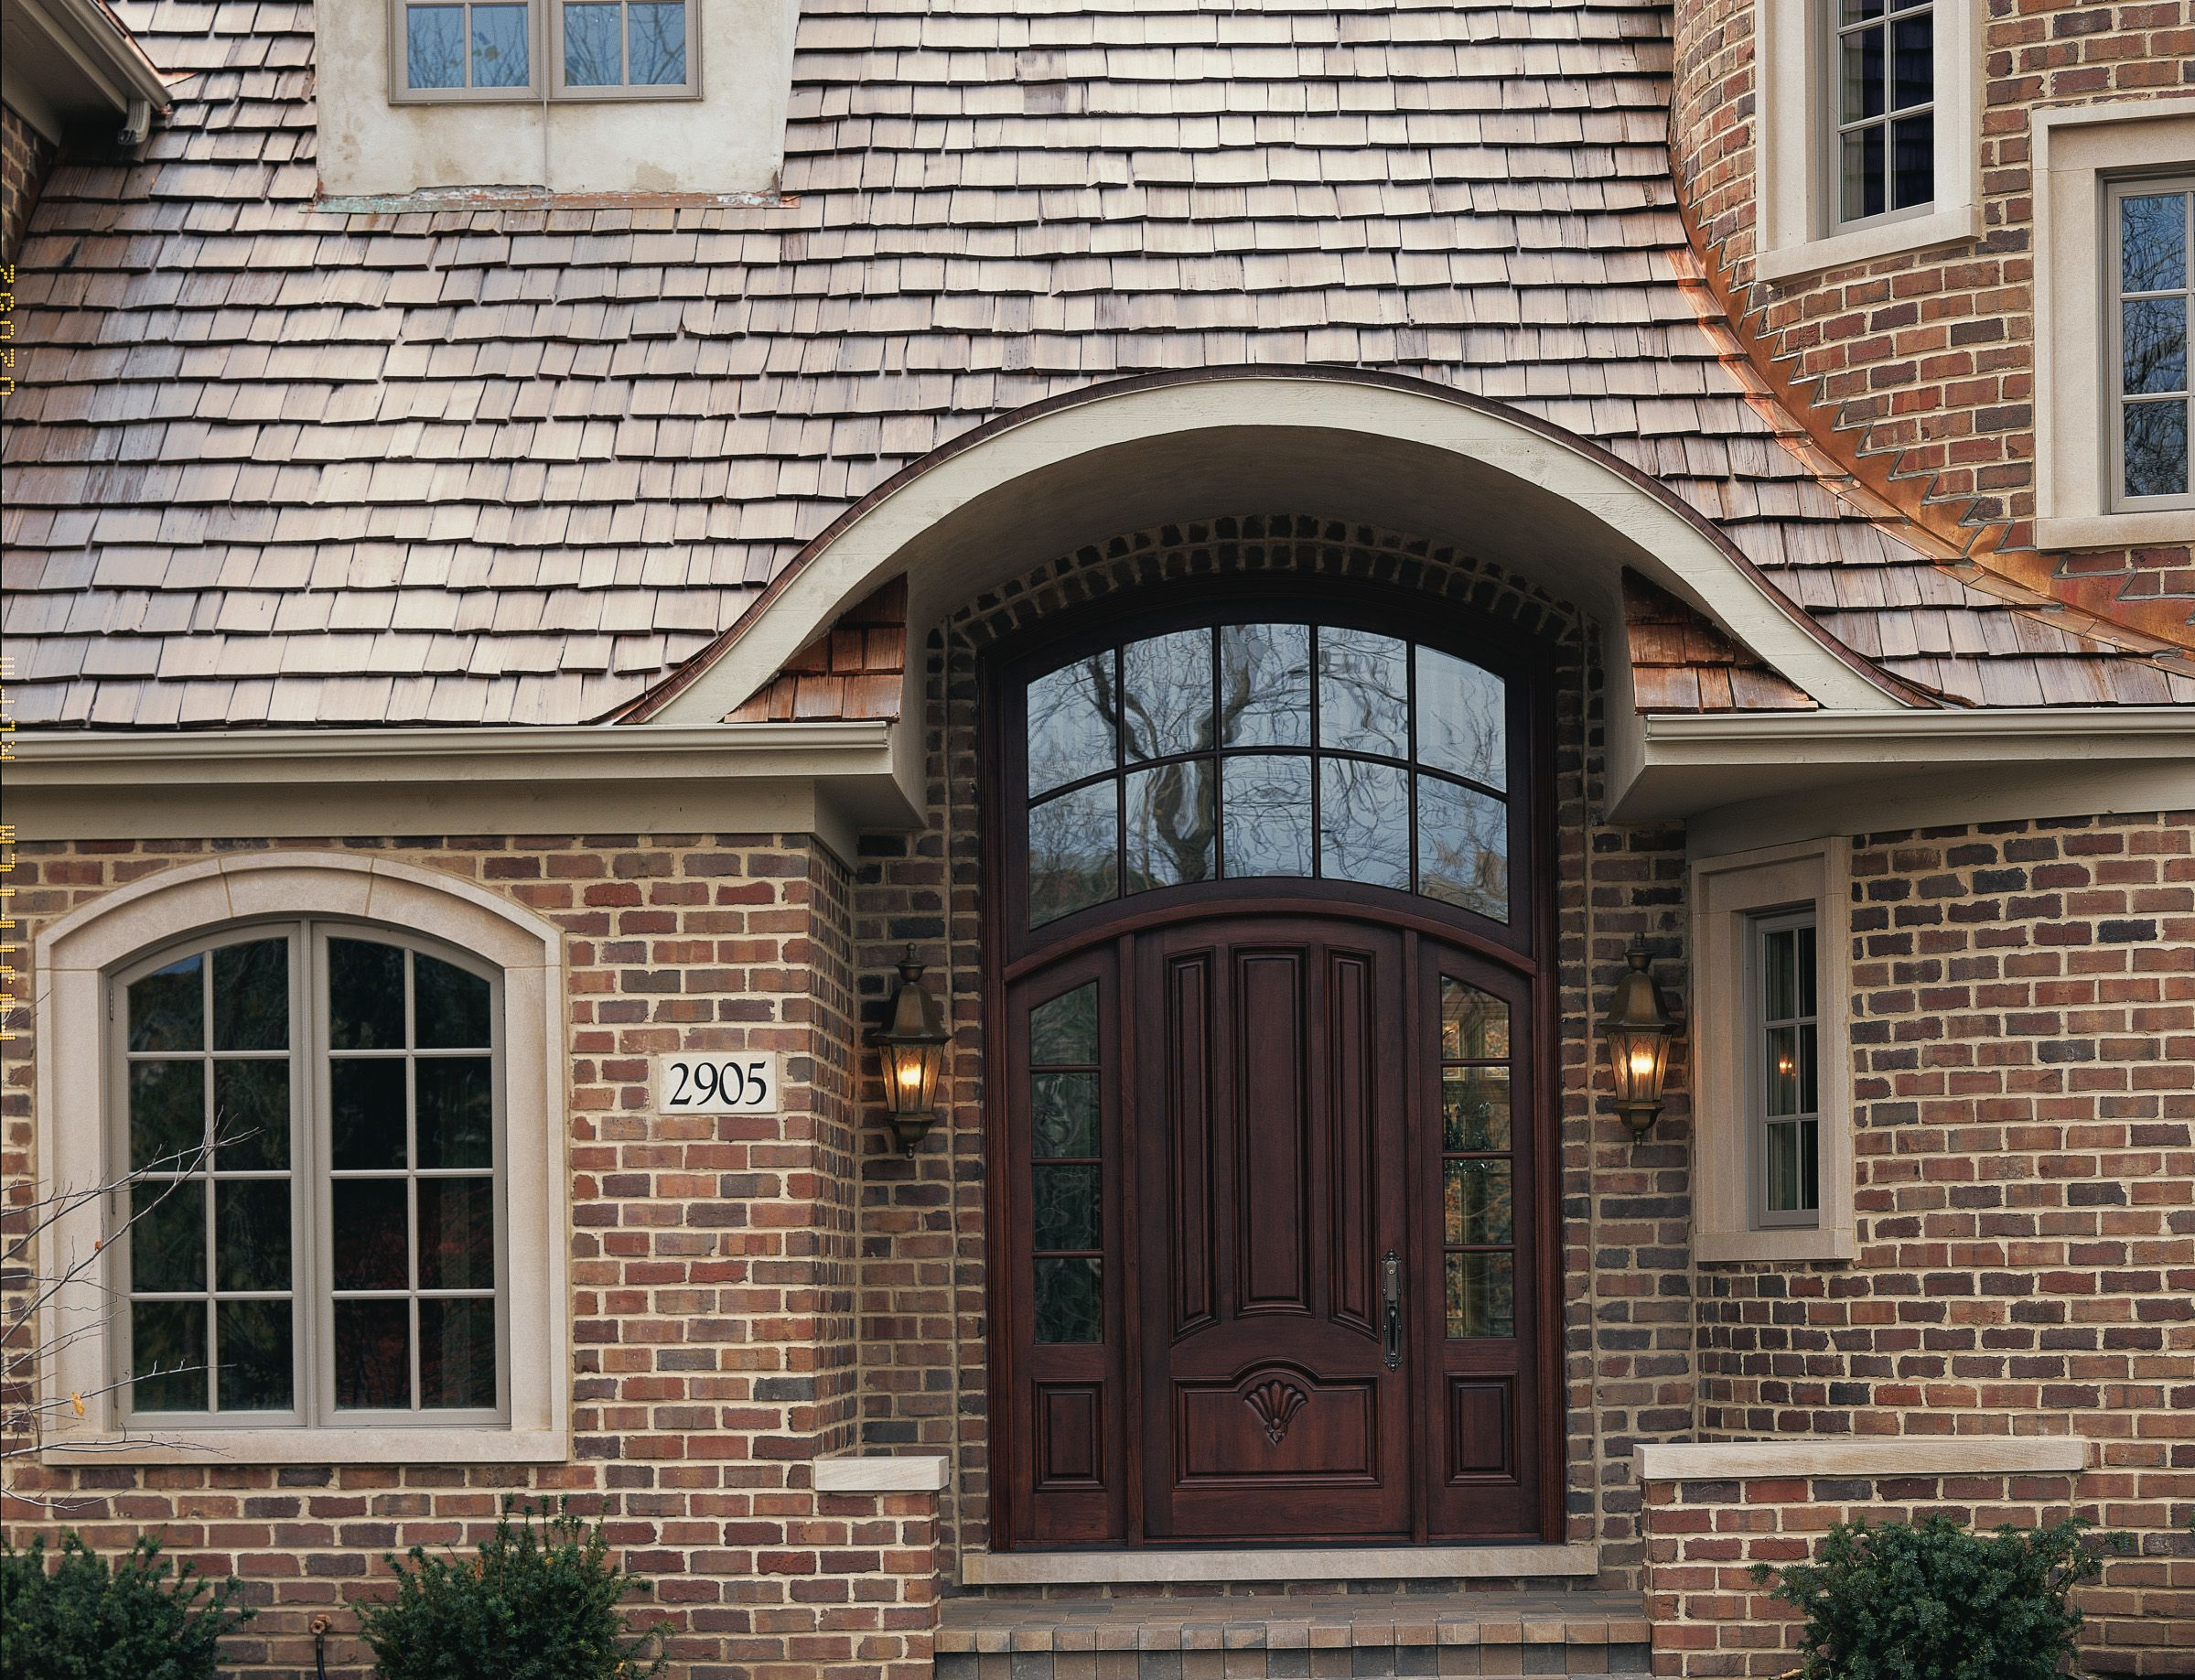 Front door with sidelights and transom - Custom Wood Mahogany Arched Entry Door Unit With Sidelights Transom Style 465 With